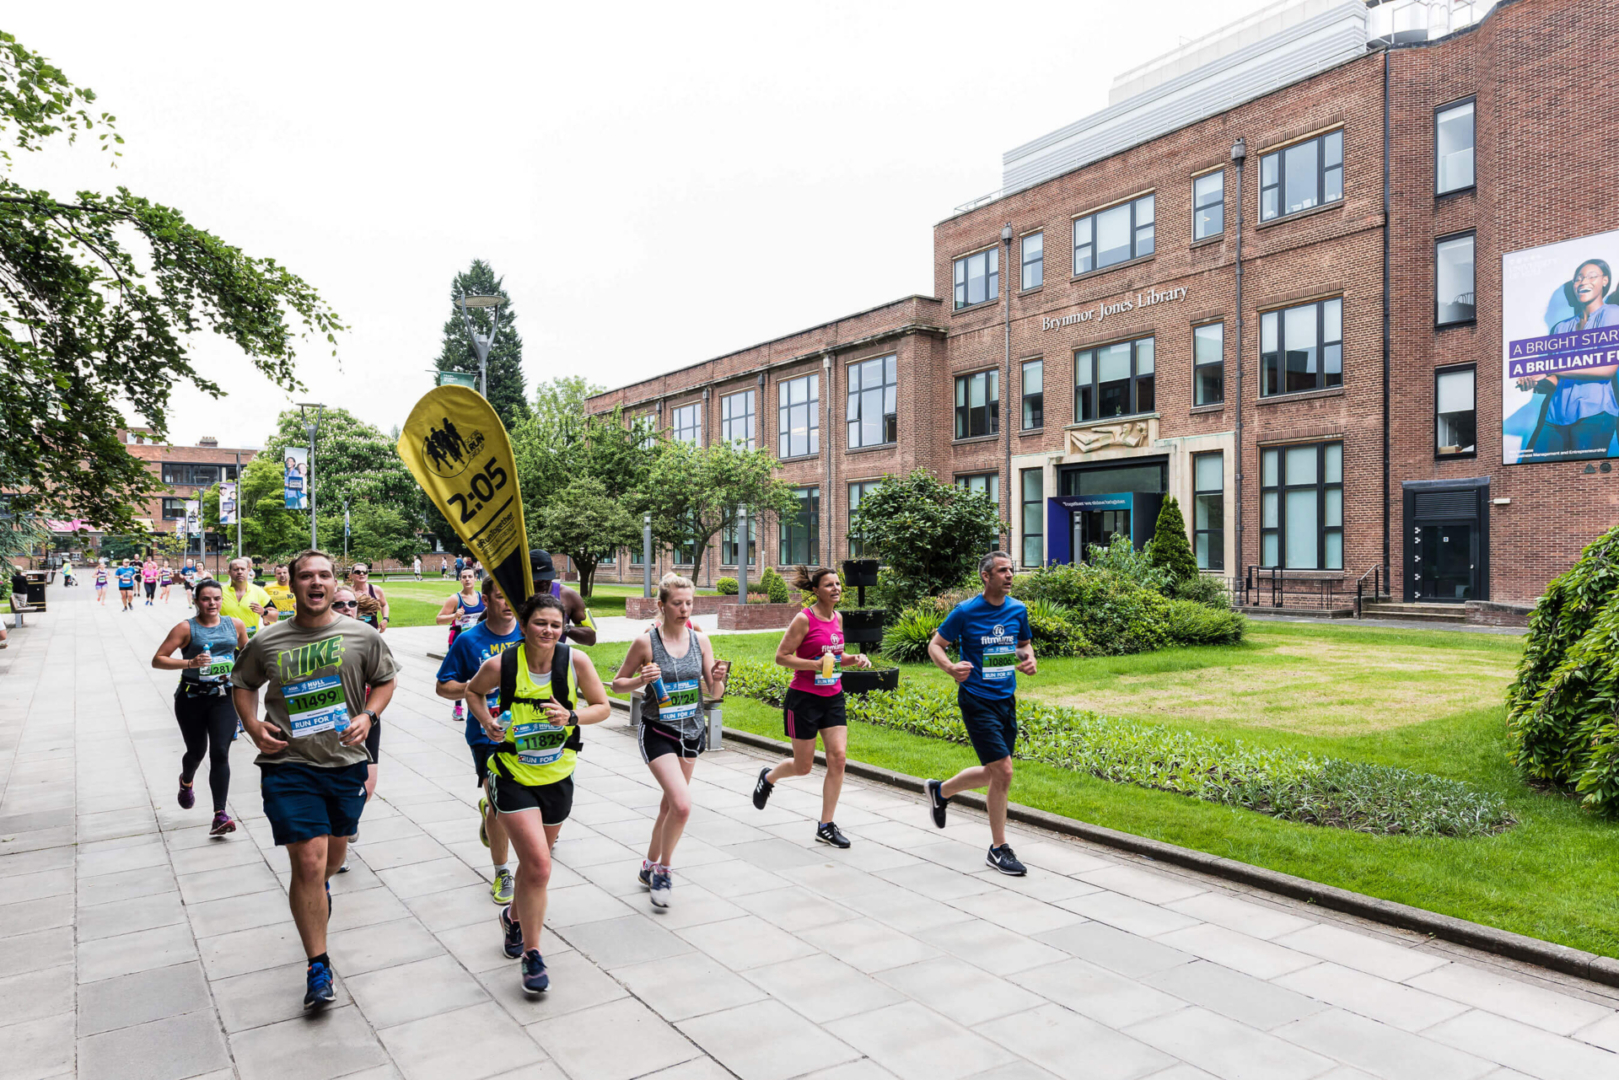 People outside running through the university campus for an event